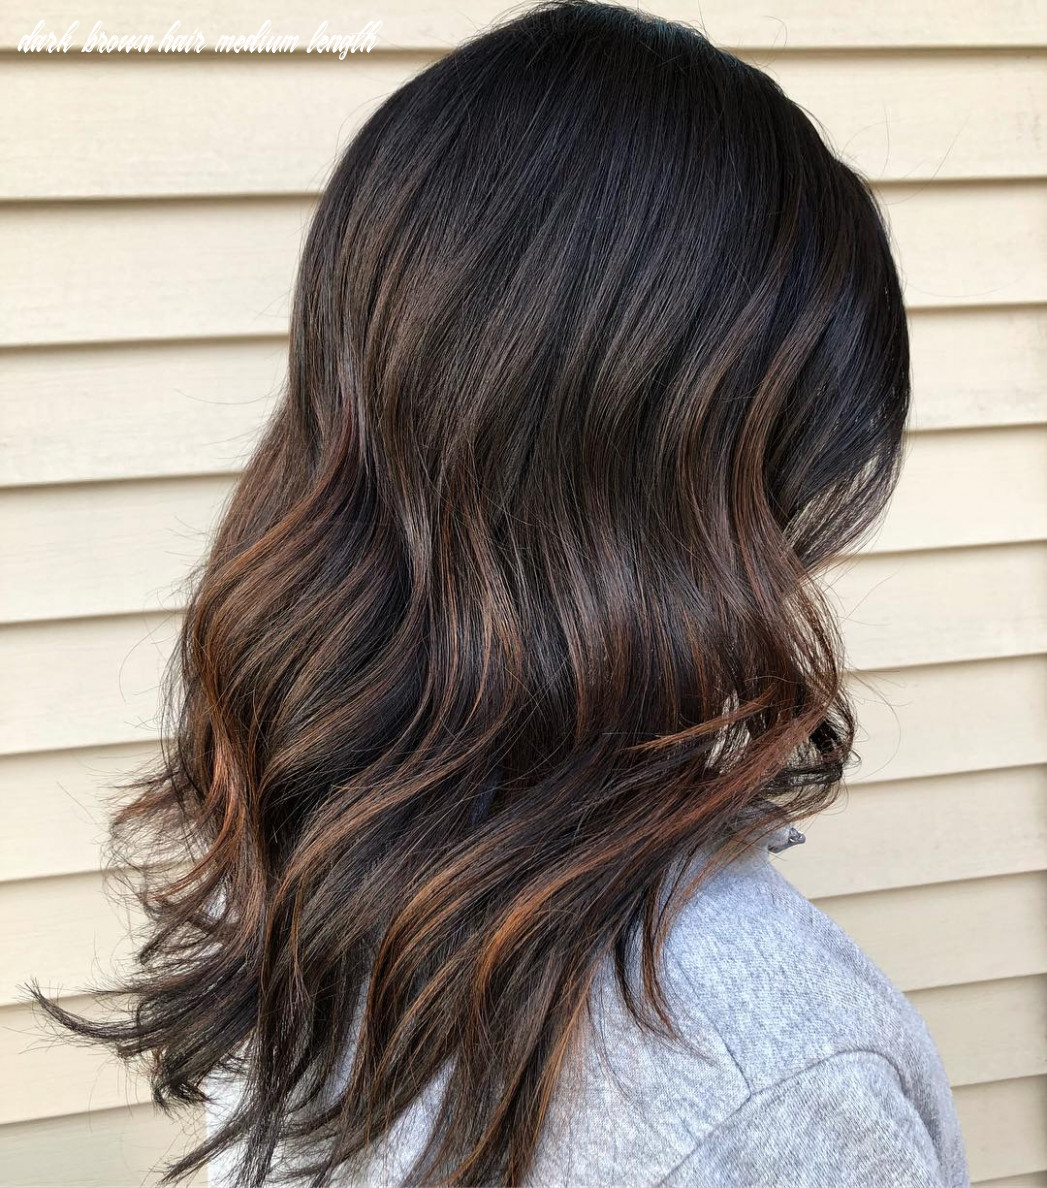 9 Dark Brown Hair with Highlights Ideas for 9 - Hair Adviser